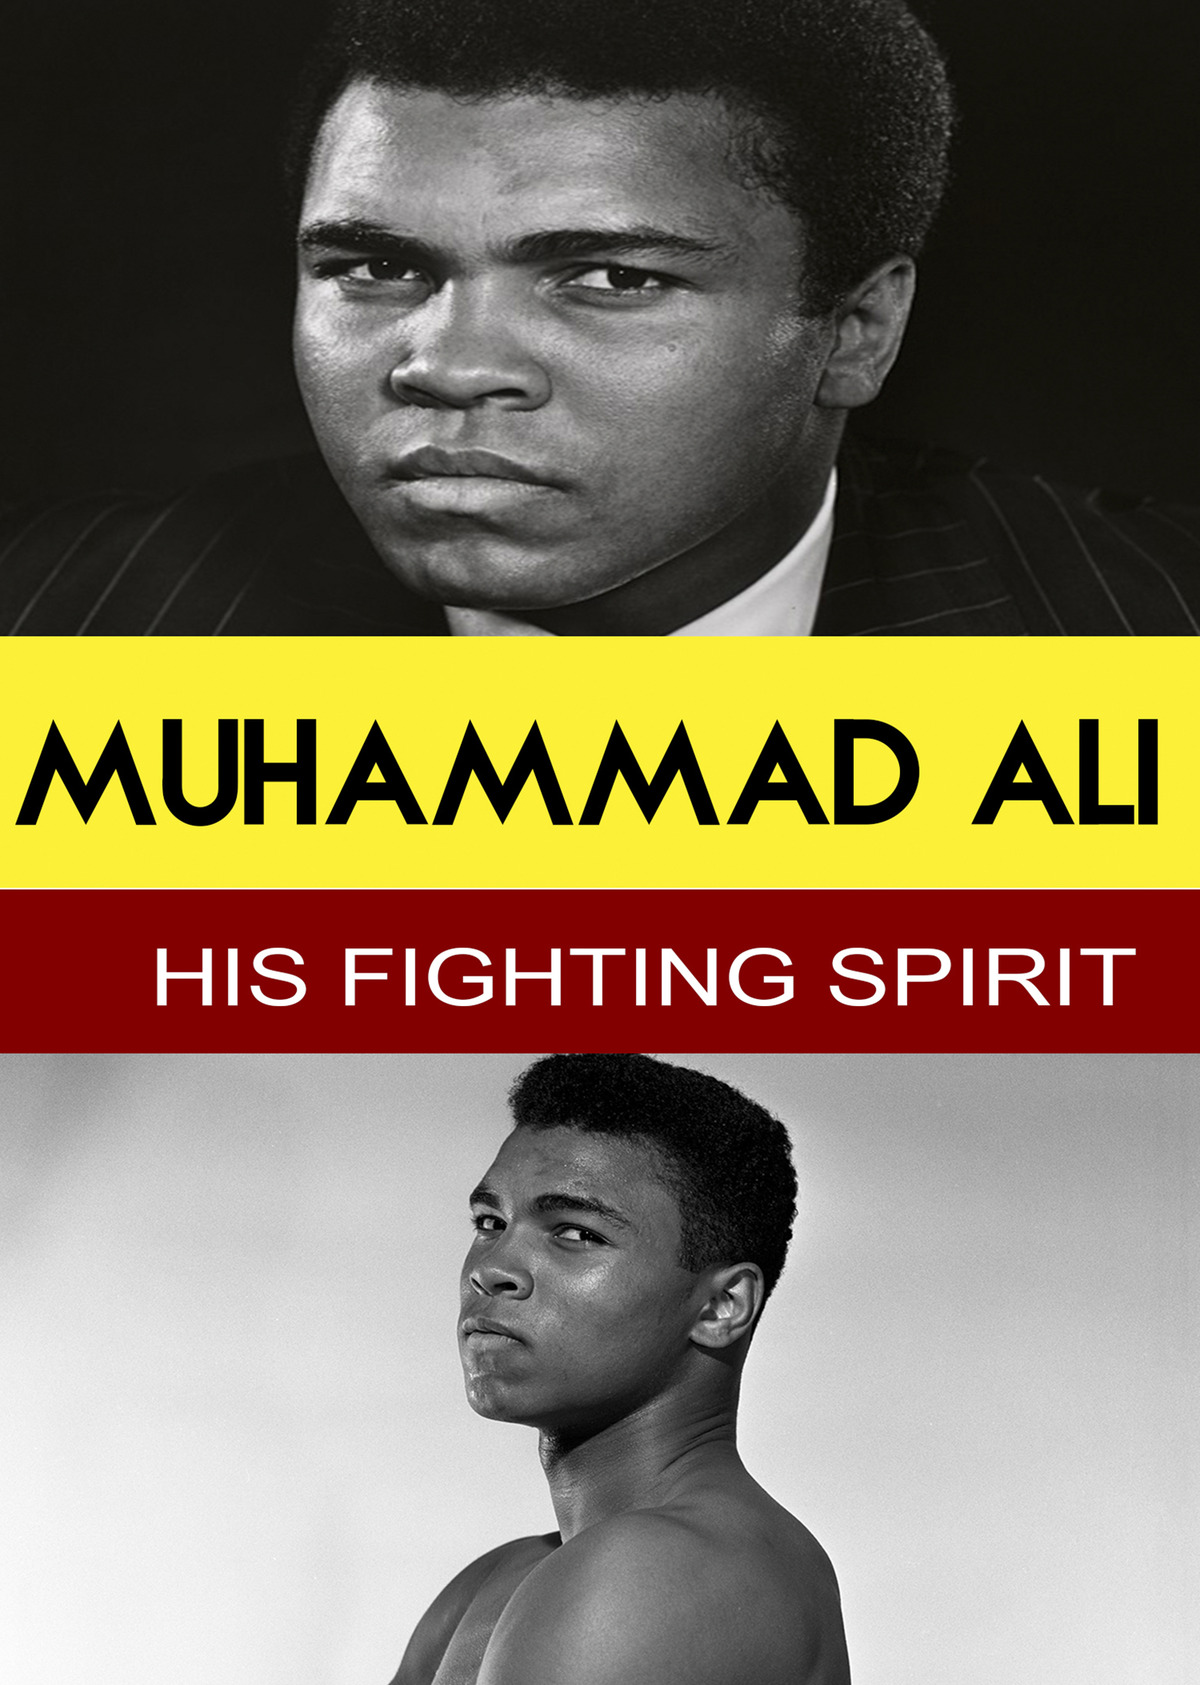 L7824 - Muhammad Ali - Fighting Spirit